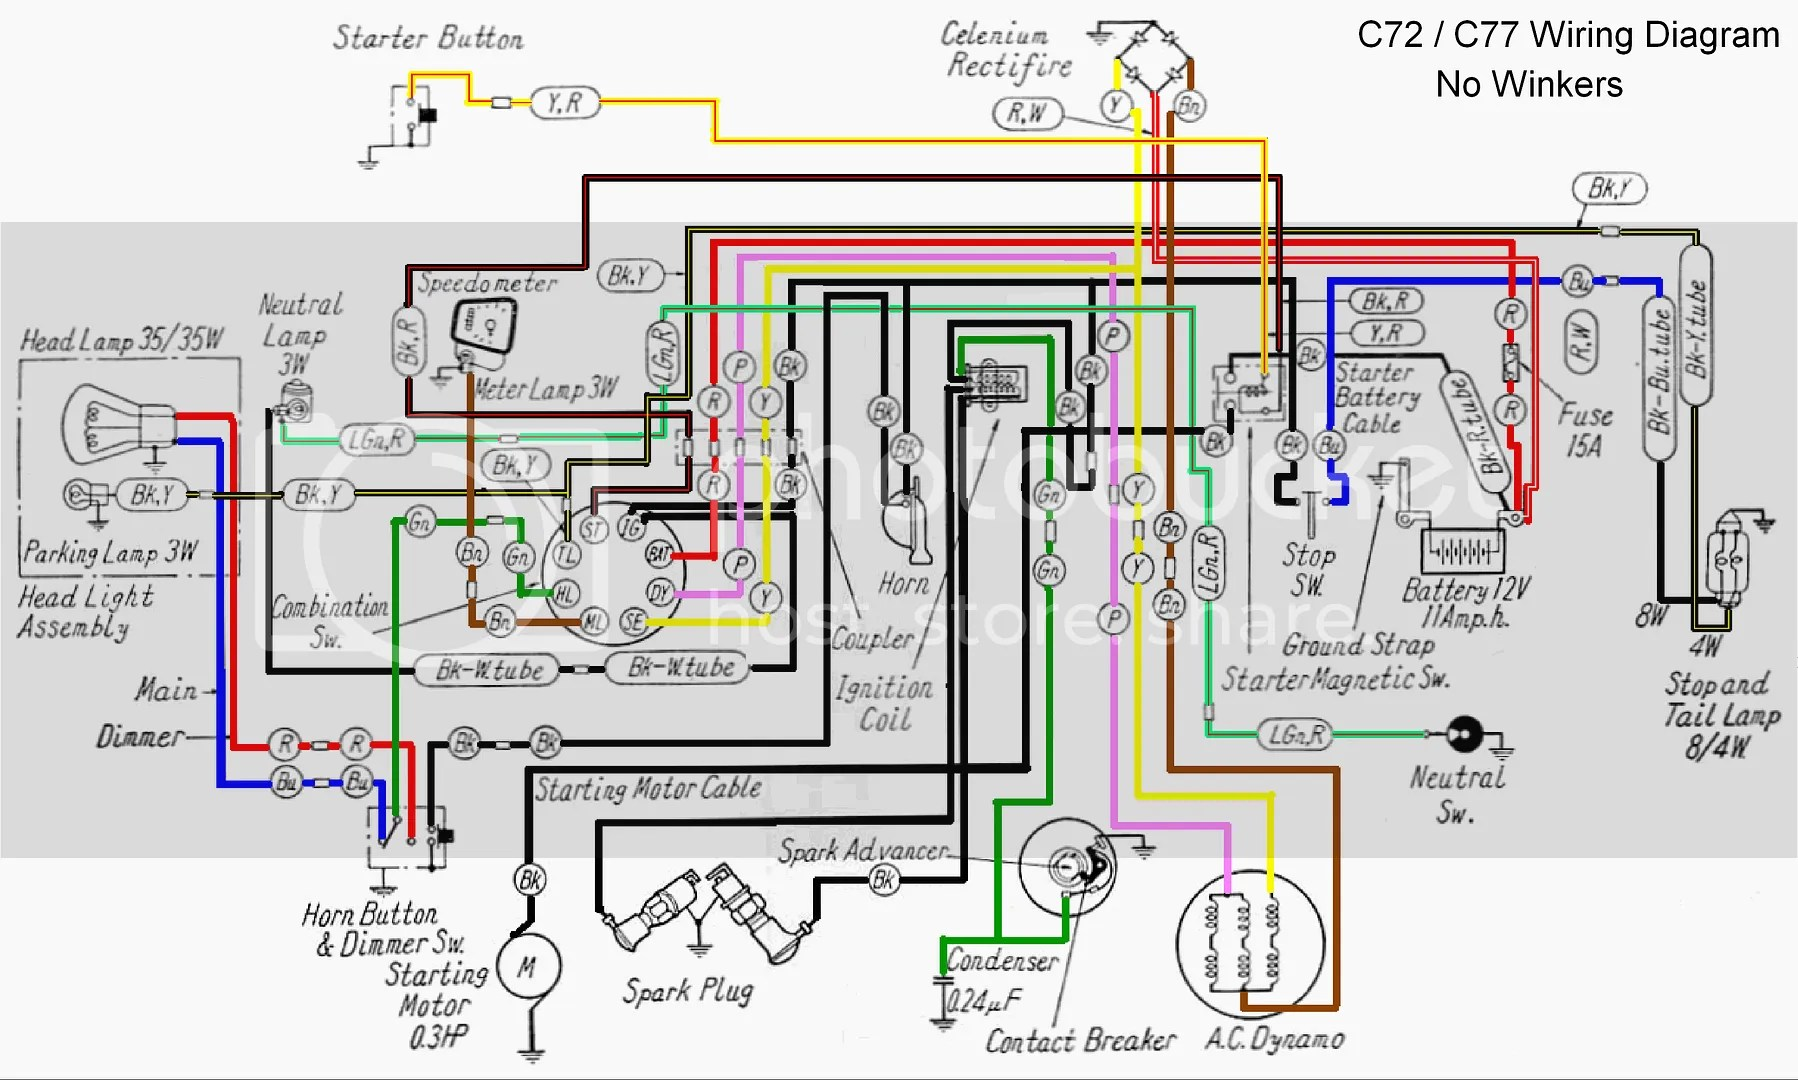 hight resolution of 1969 cb175 wiring diagram wiring diagram article review